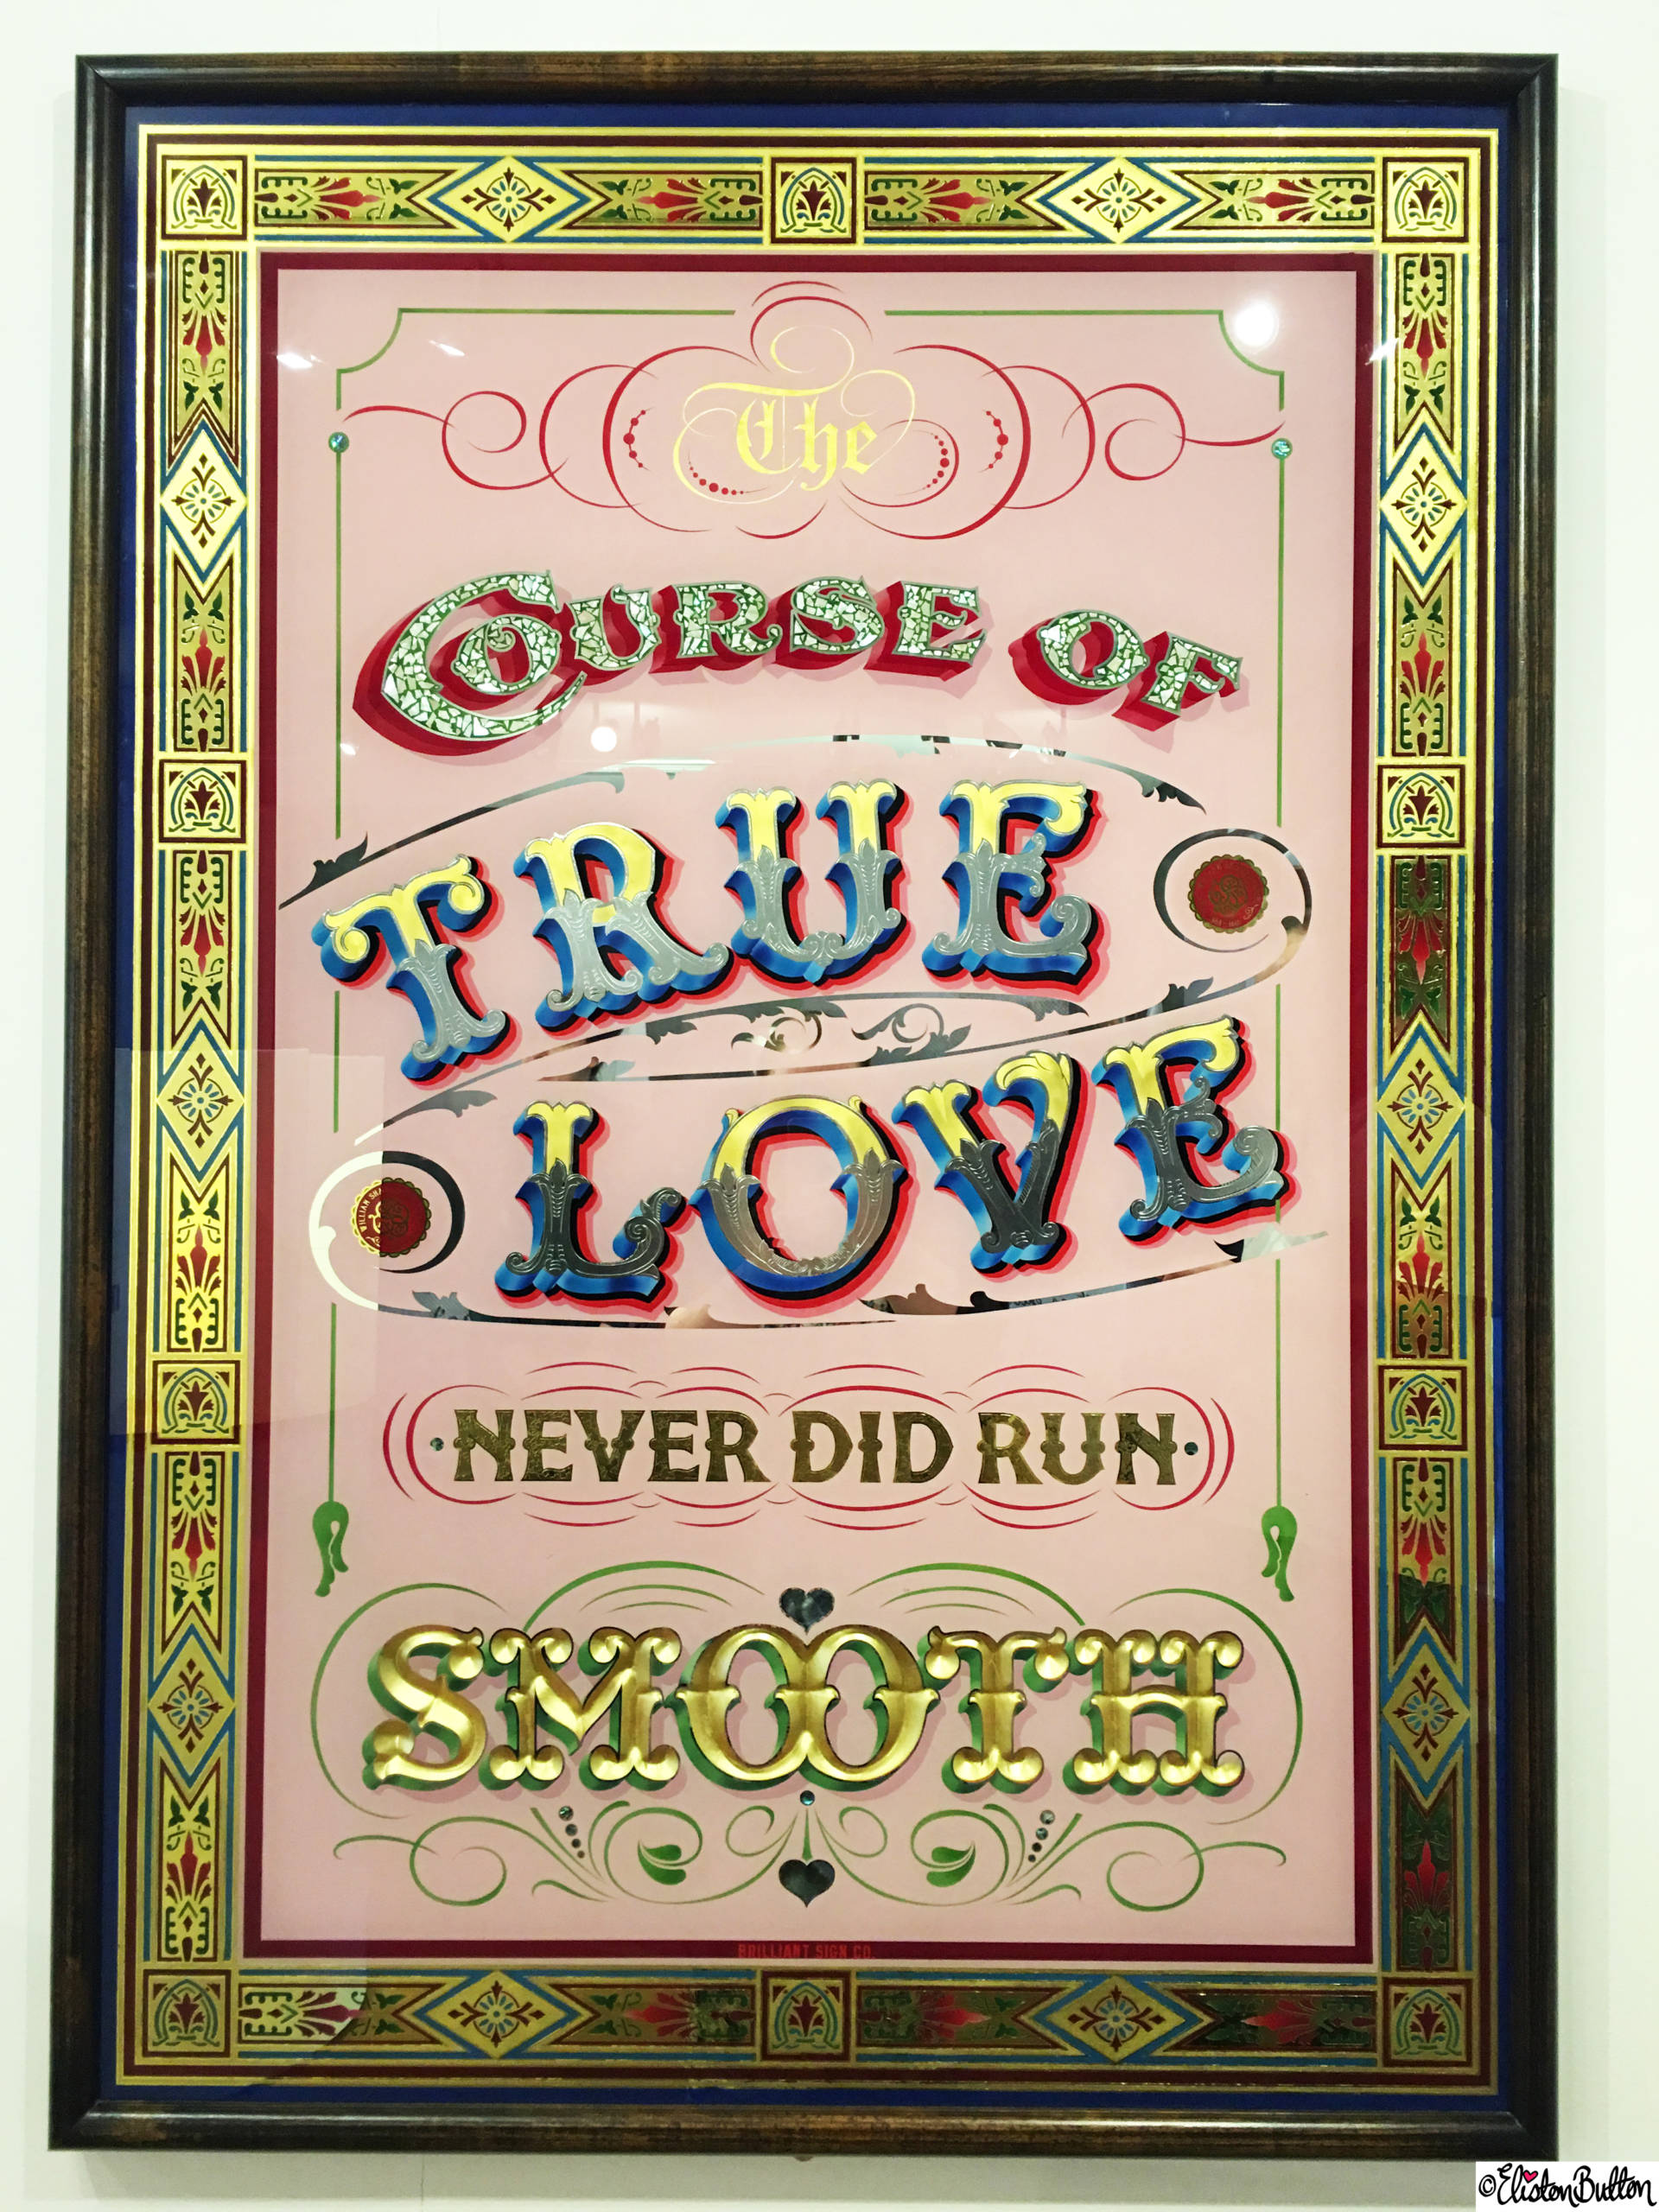 The Curse of True Love Never Did Run Smooth - Midsummer Nights Dream Quote Typography Art at Royal Shakespeare Theatre, Stratford-upon-Avon - Birthday Adventures at www.elistonbutton.com - Eliston Button - That Crafty Kid – Art, Design, Craft & Adventure.